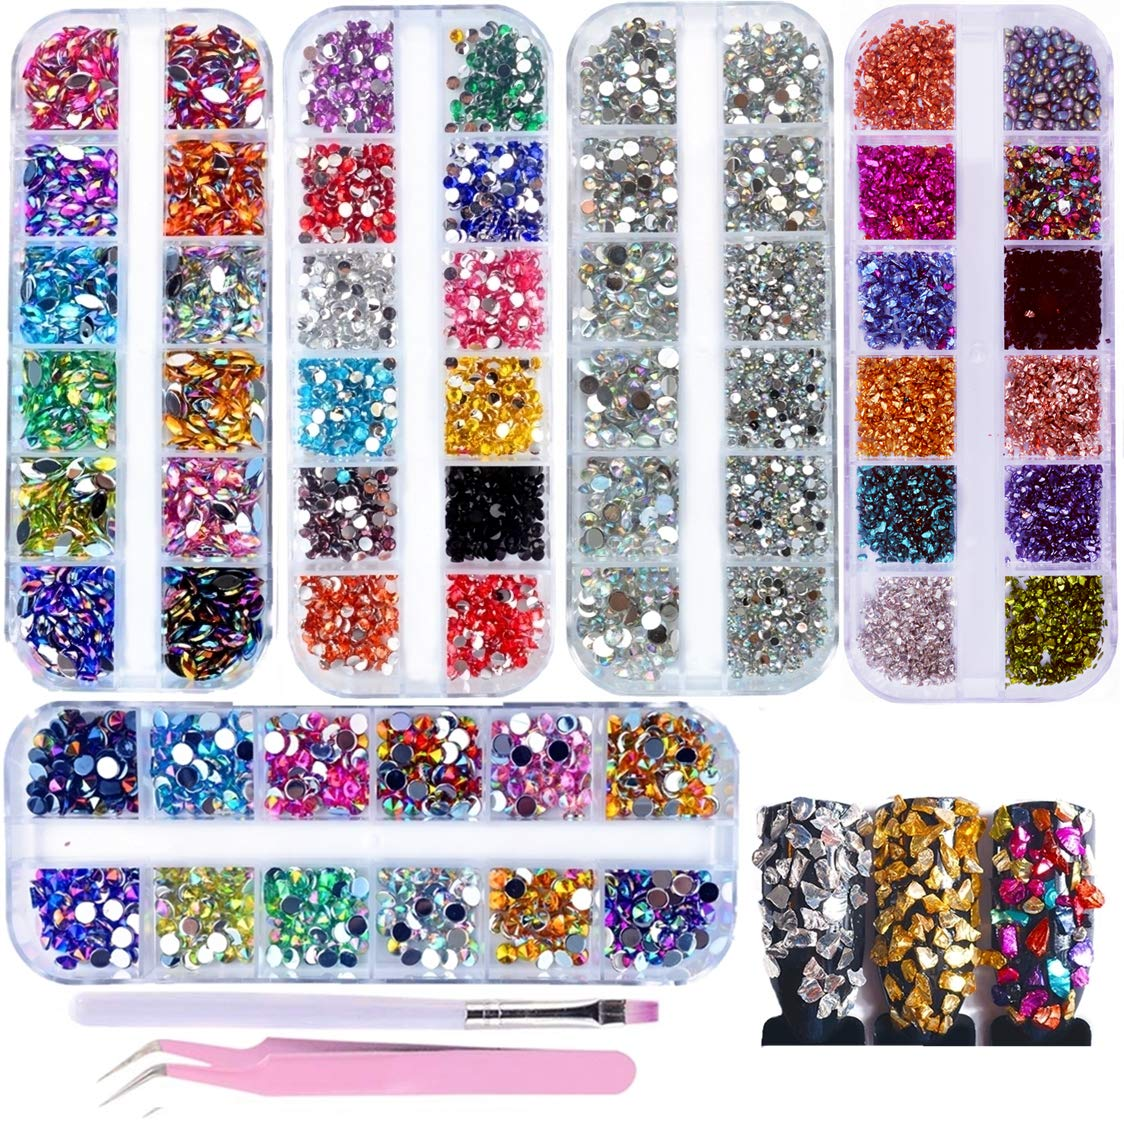 editTime Limited time sale 5000 Pieces 5 Boxes Nail Colorful Art Rhineston Sale Special Price Shiny